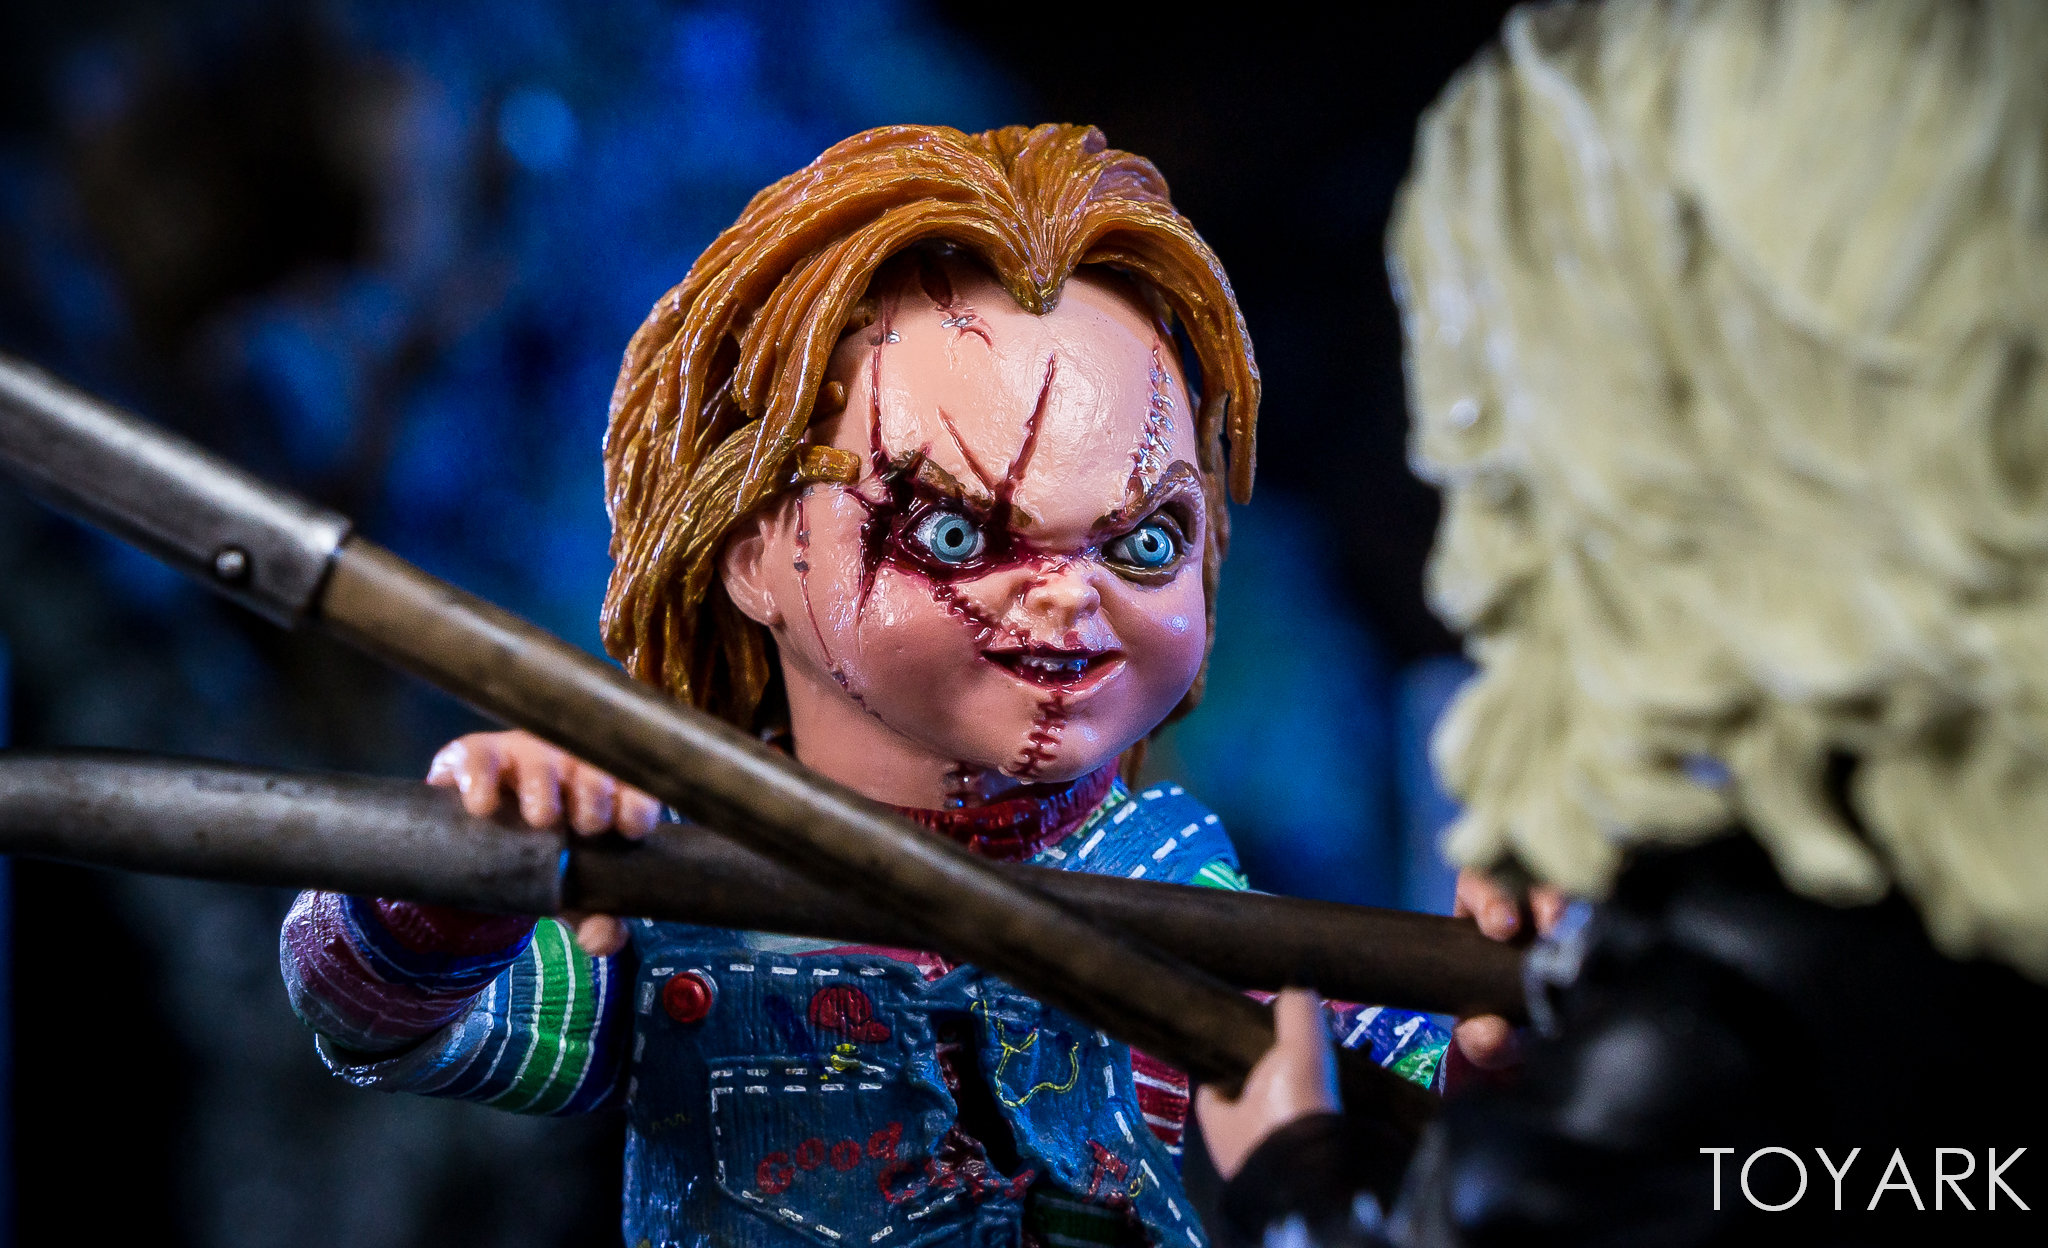 https://news.toyark.com/wp-content/uploads/sites/4/2019/01/Bride-of-Chucky-NECA-Set-058.jpg